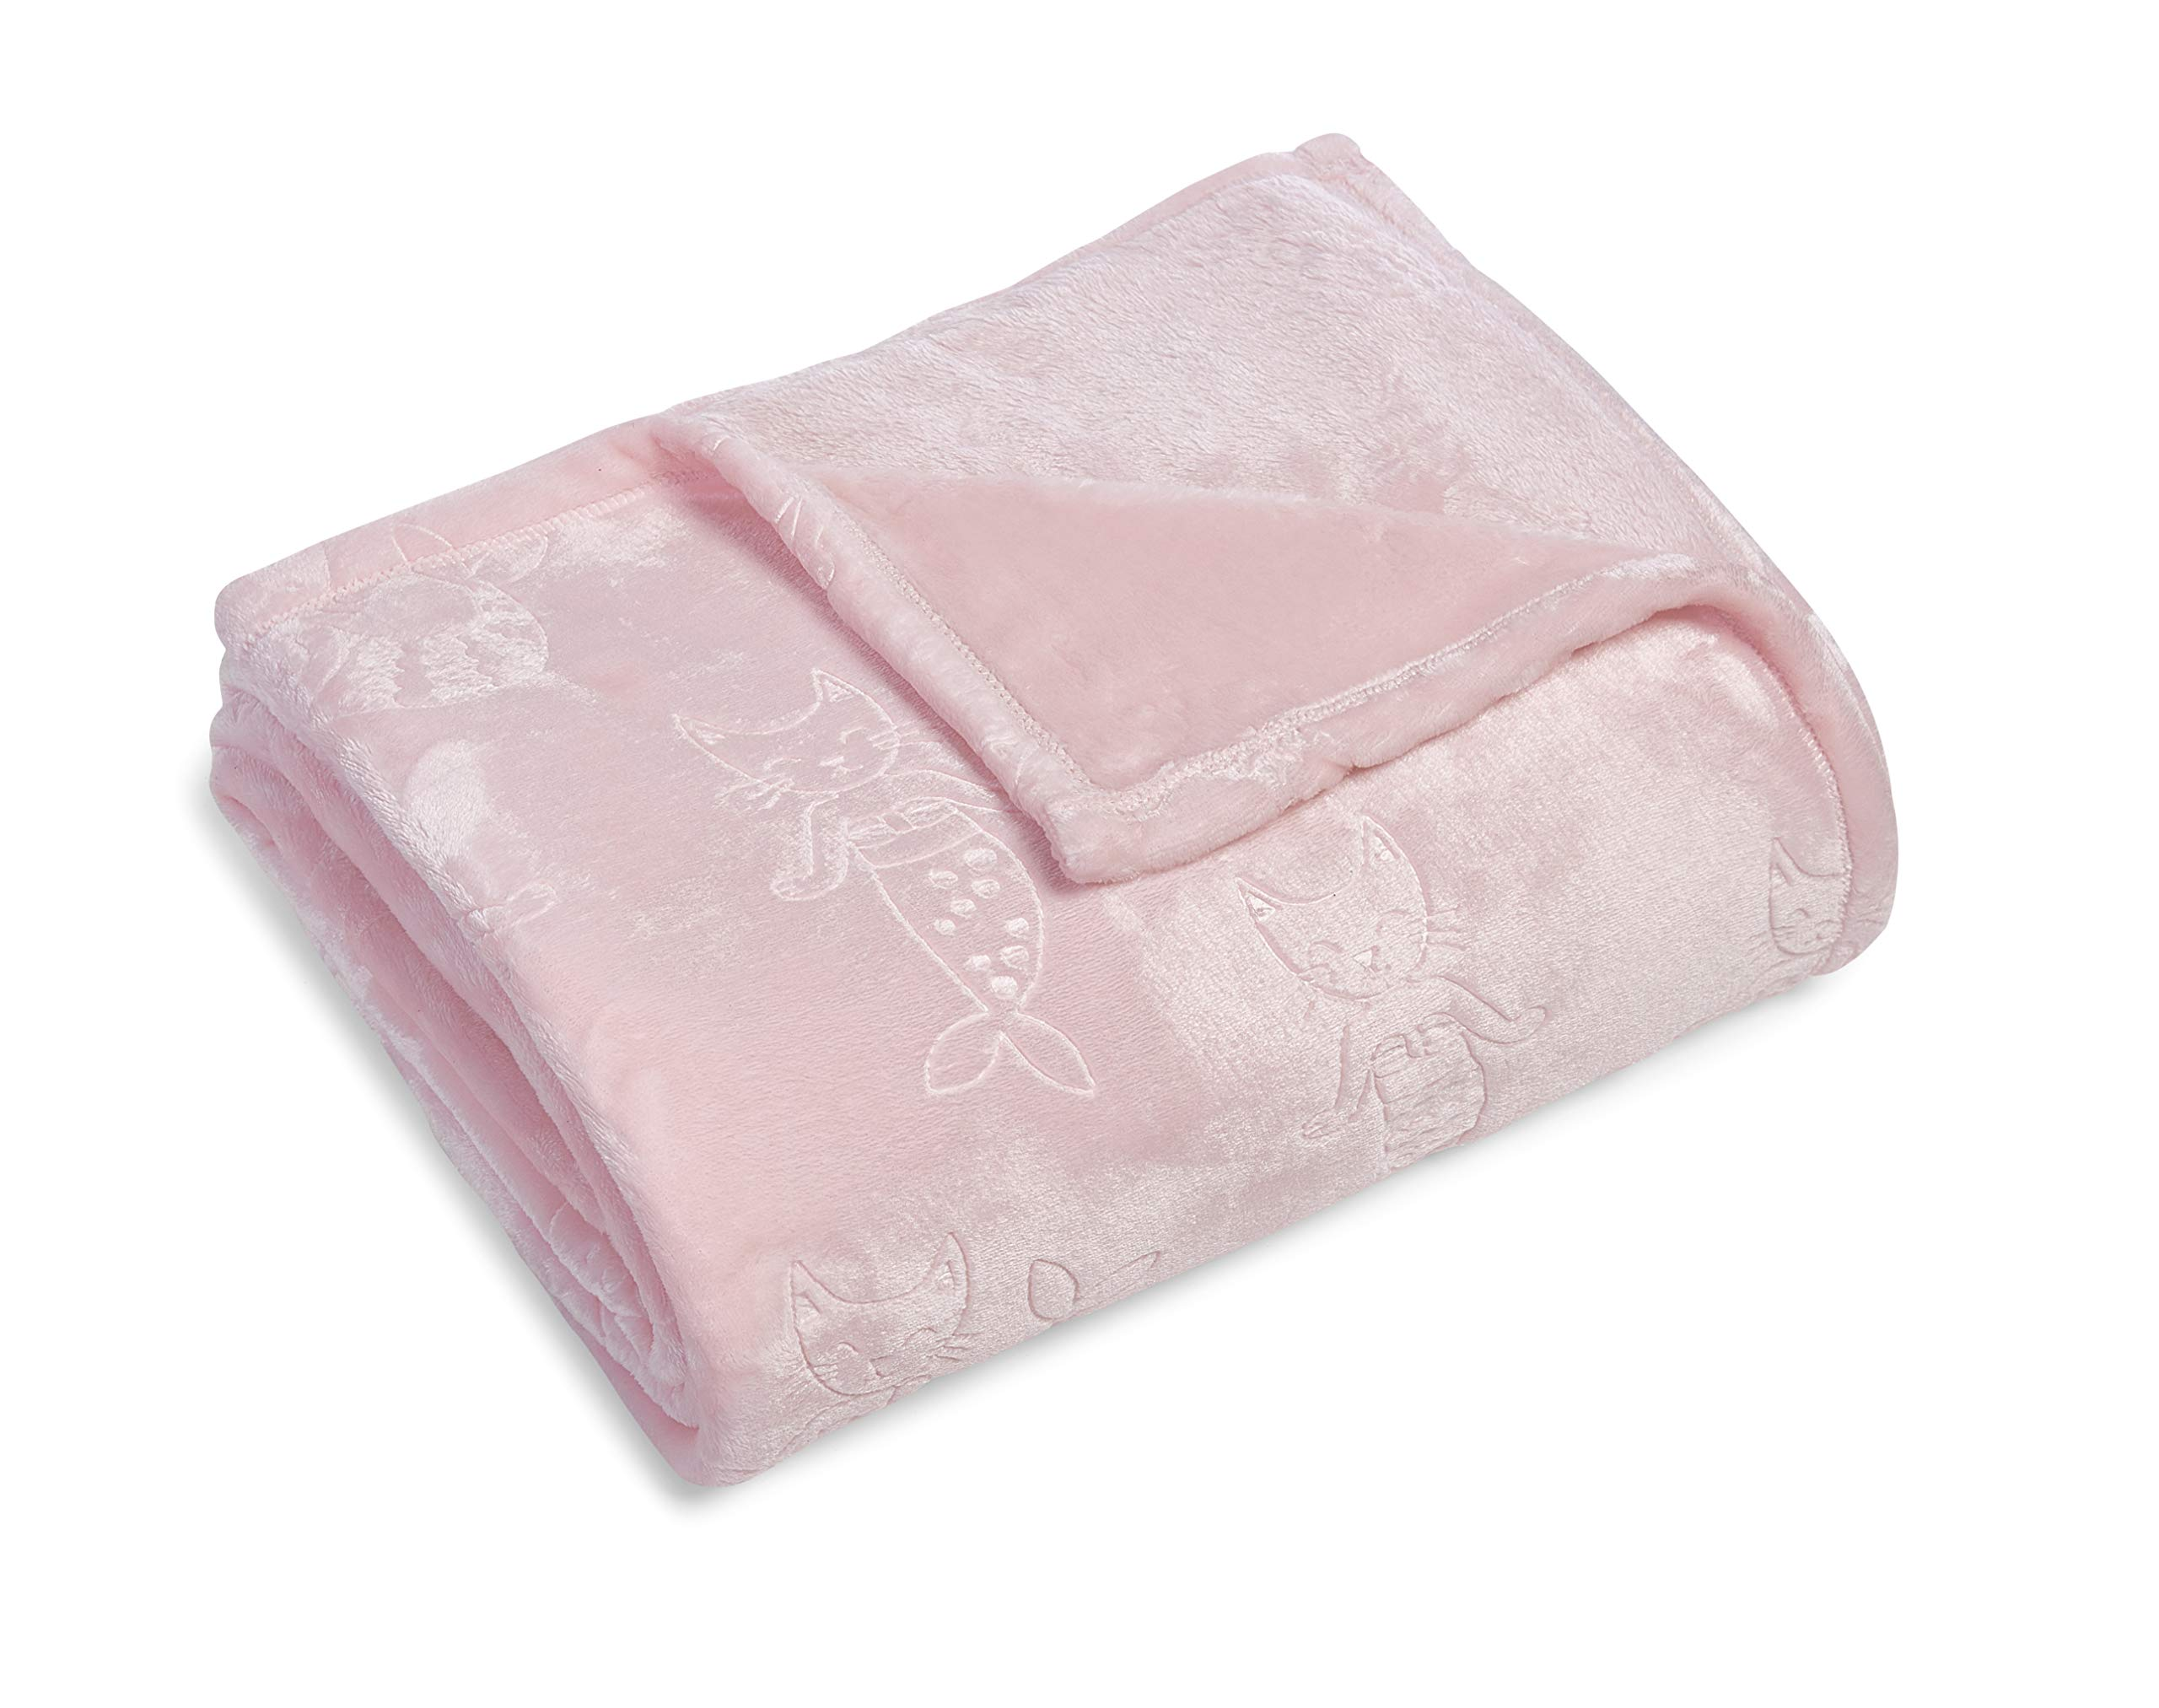 Kute Kids Embossed Velvet Plush Girls Twin Blanket - Available in Mermaid Cats and Unicorn Designs, Colors Include Pink, Aqua, Purple and Grey - Super Soft and Ultra Cozy (Pink Mermaid) by Kute Kids